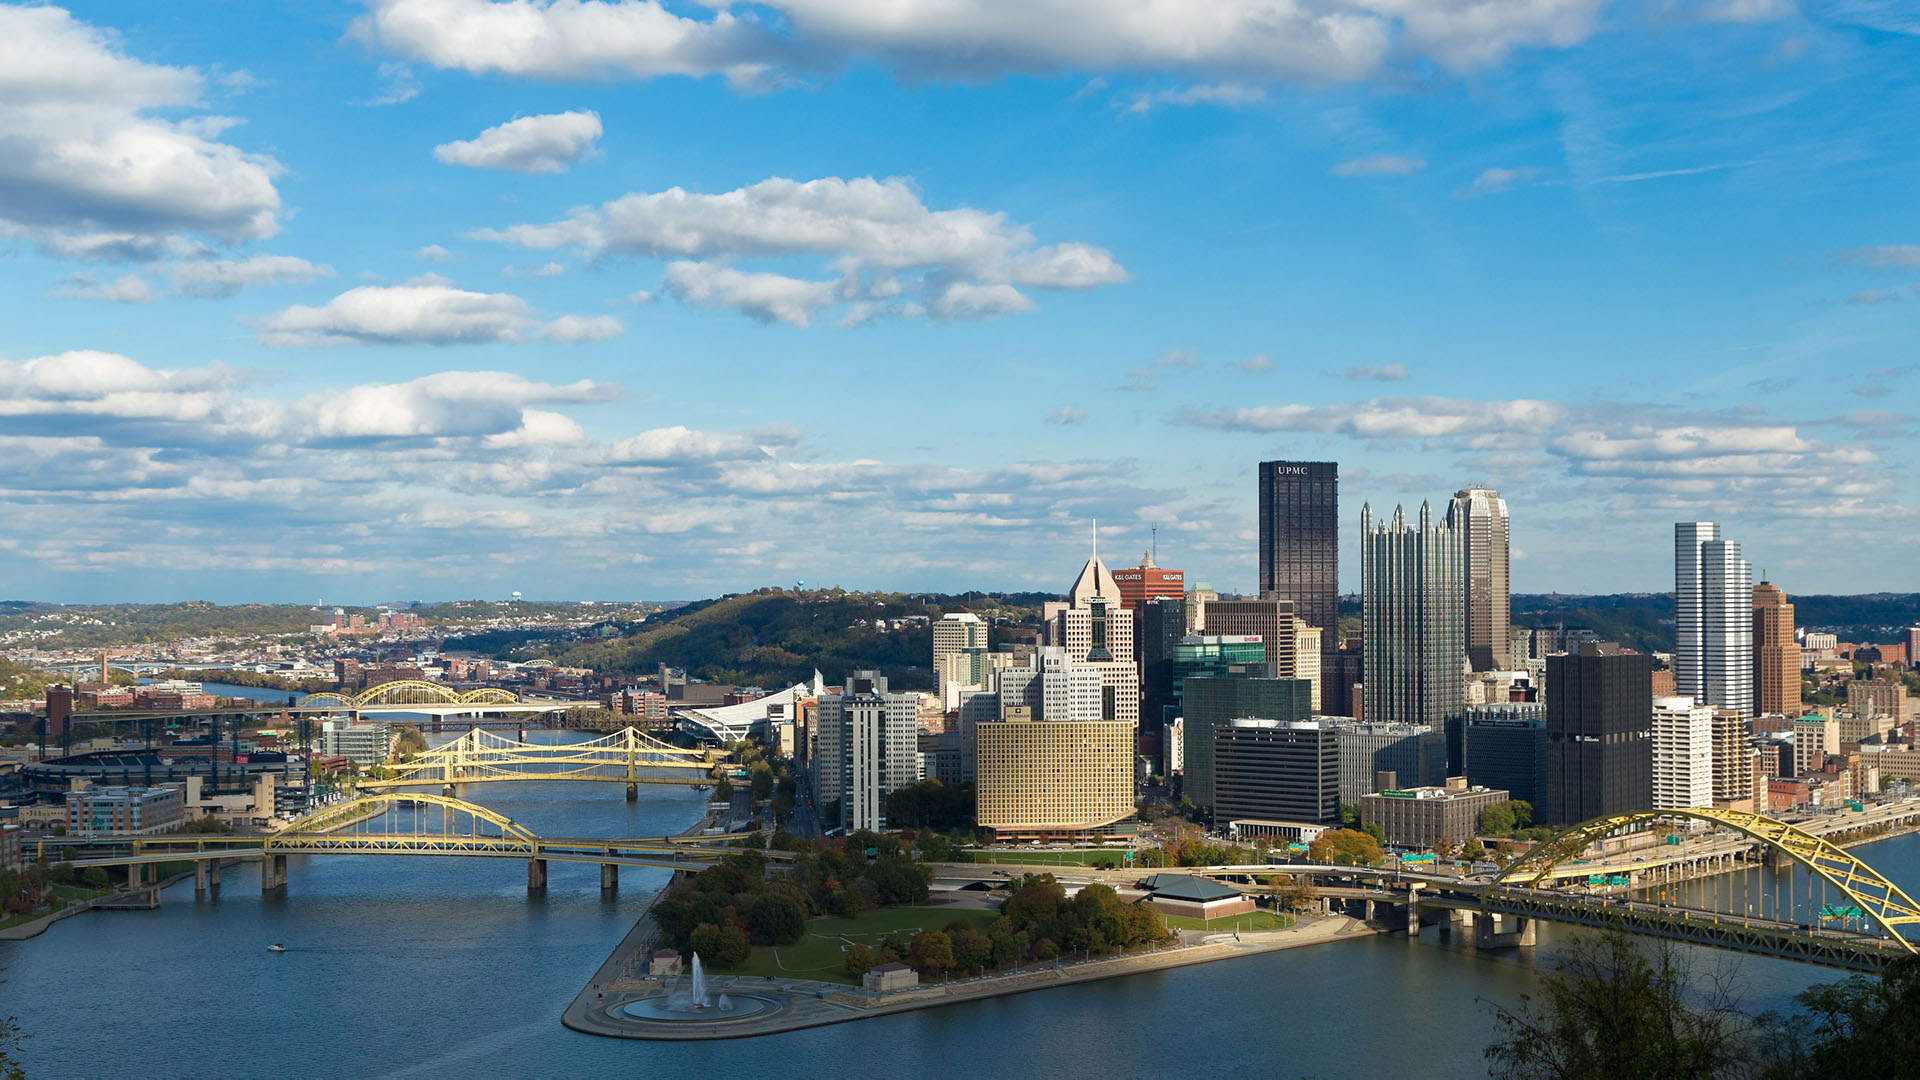 Pittsburgh urban wallpaper of a city skyline afternoon during the day